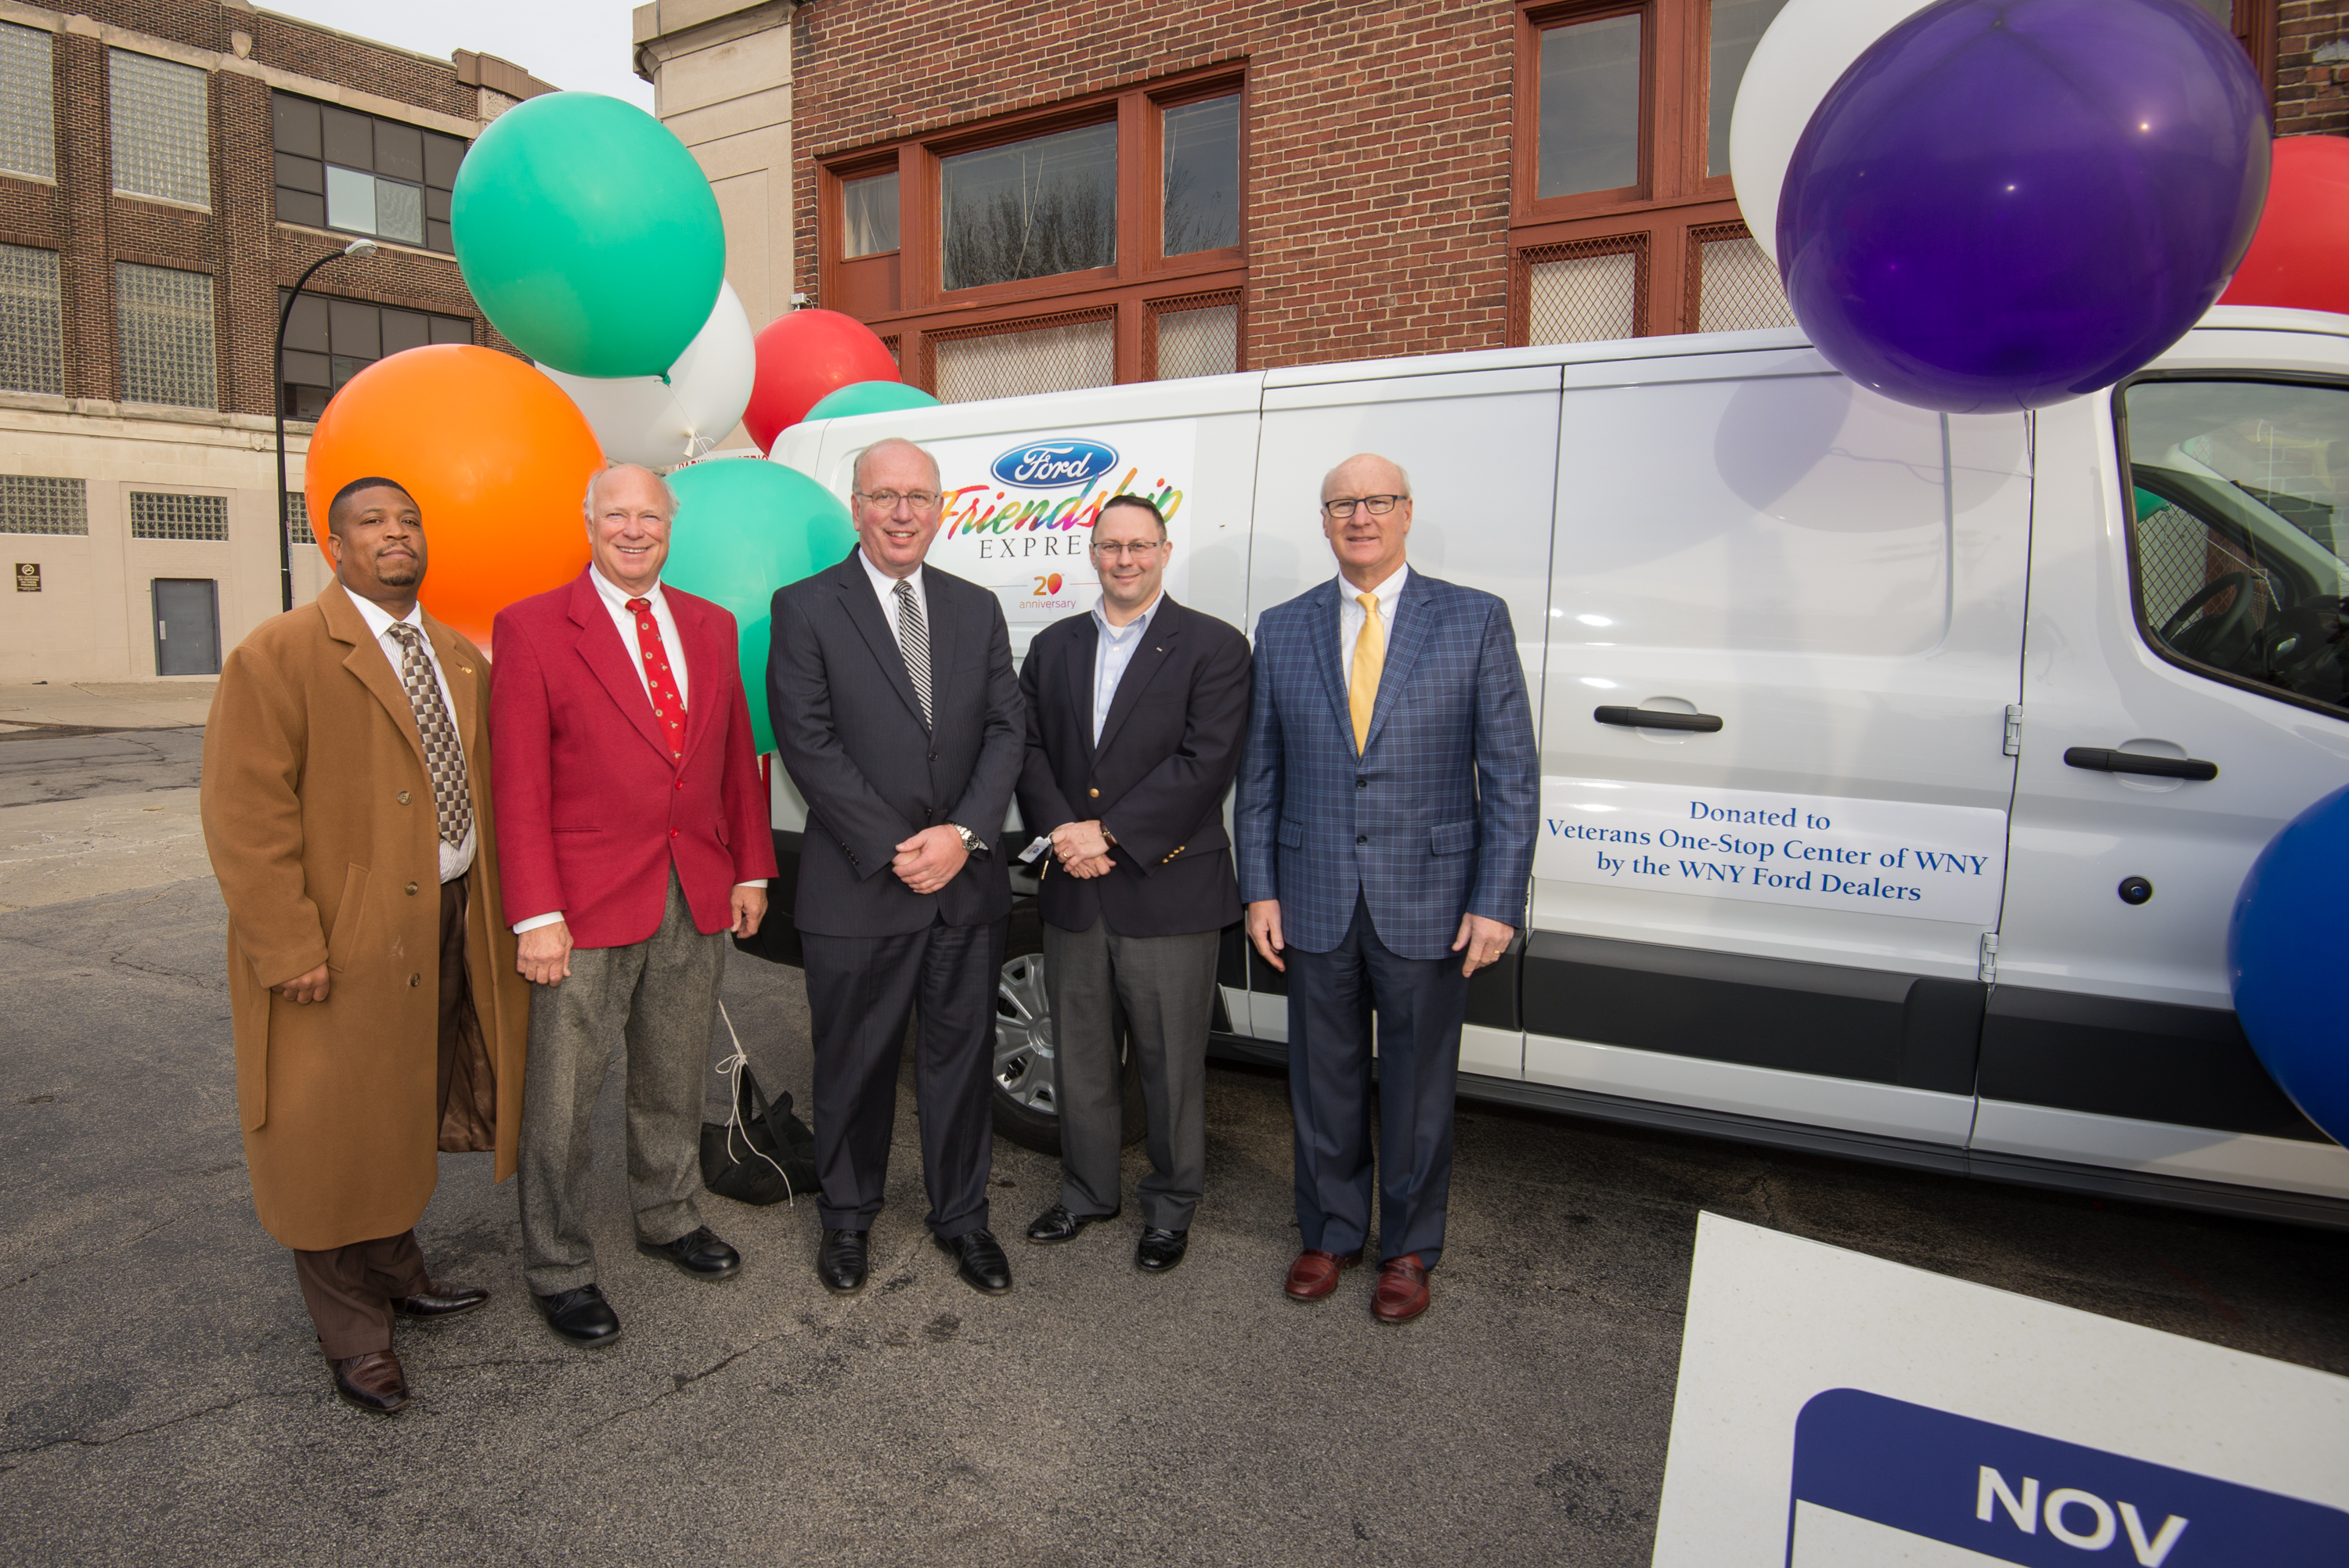 One of three vans donated through Ford Friendship Express. Left to right: Kenny Simmons, director of recreation, City of Buffalo; Carl Emmerling, Ford Friendship Express selection committee member; Scott Bieler, chairman of selection committee; Roger Woodworth, president and CEO, Veterans One-stop; Chuck Basil, Basil Ford.